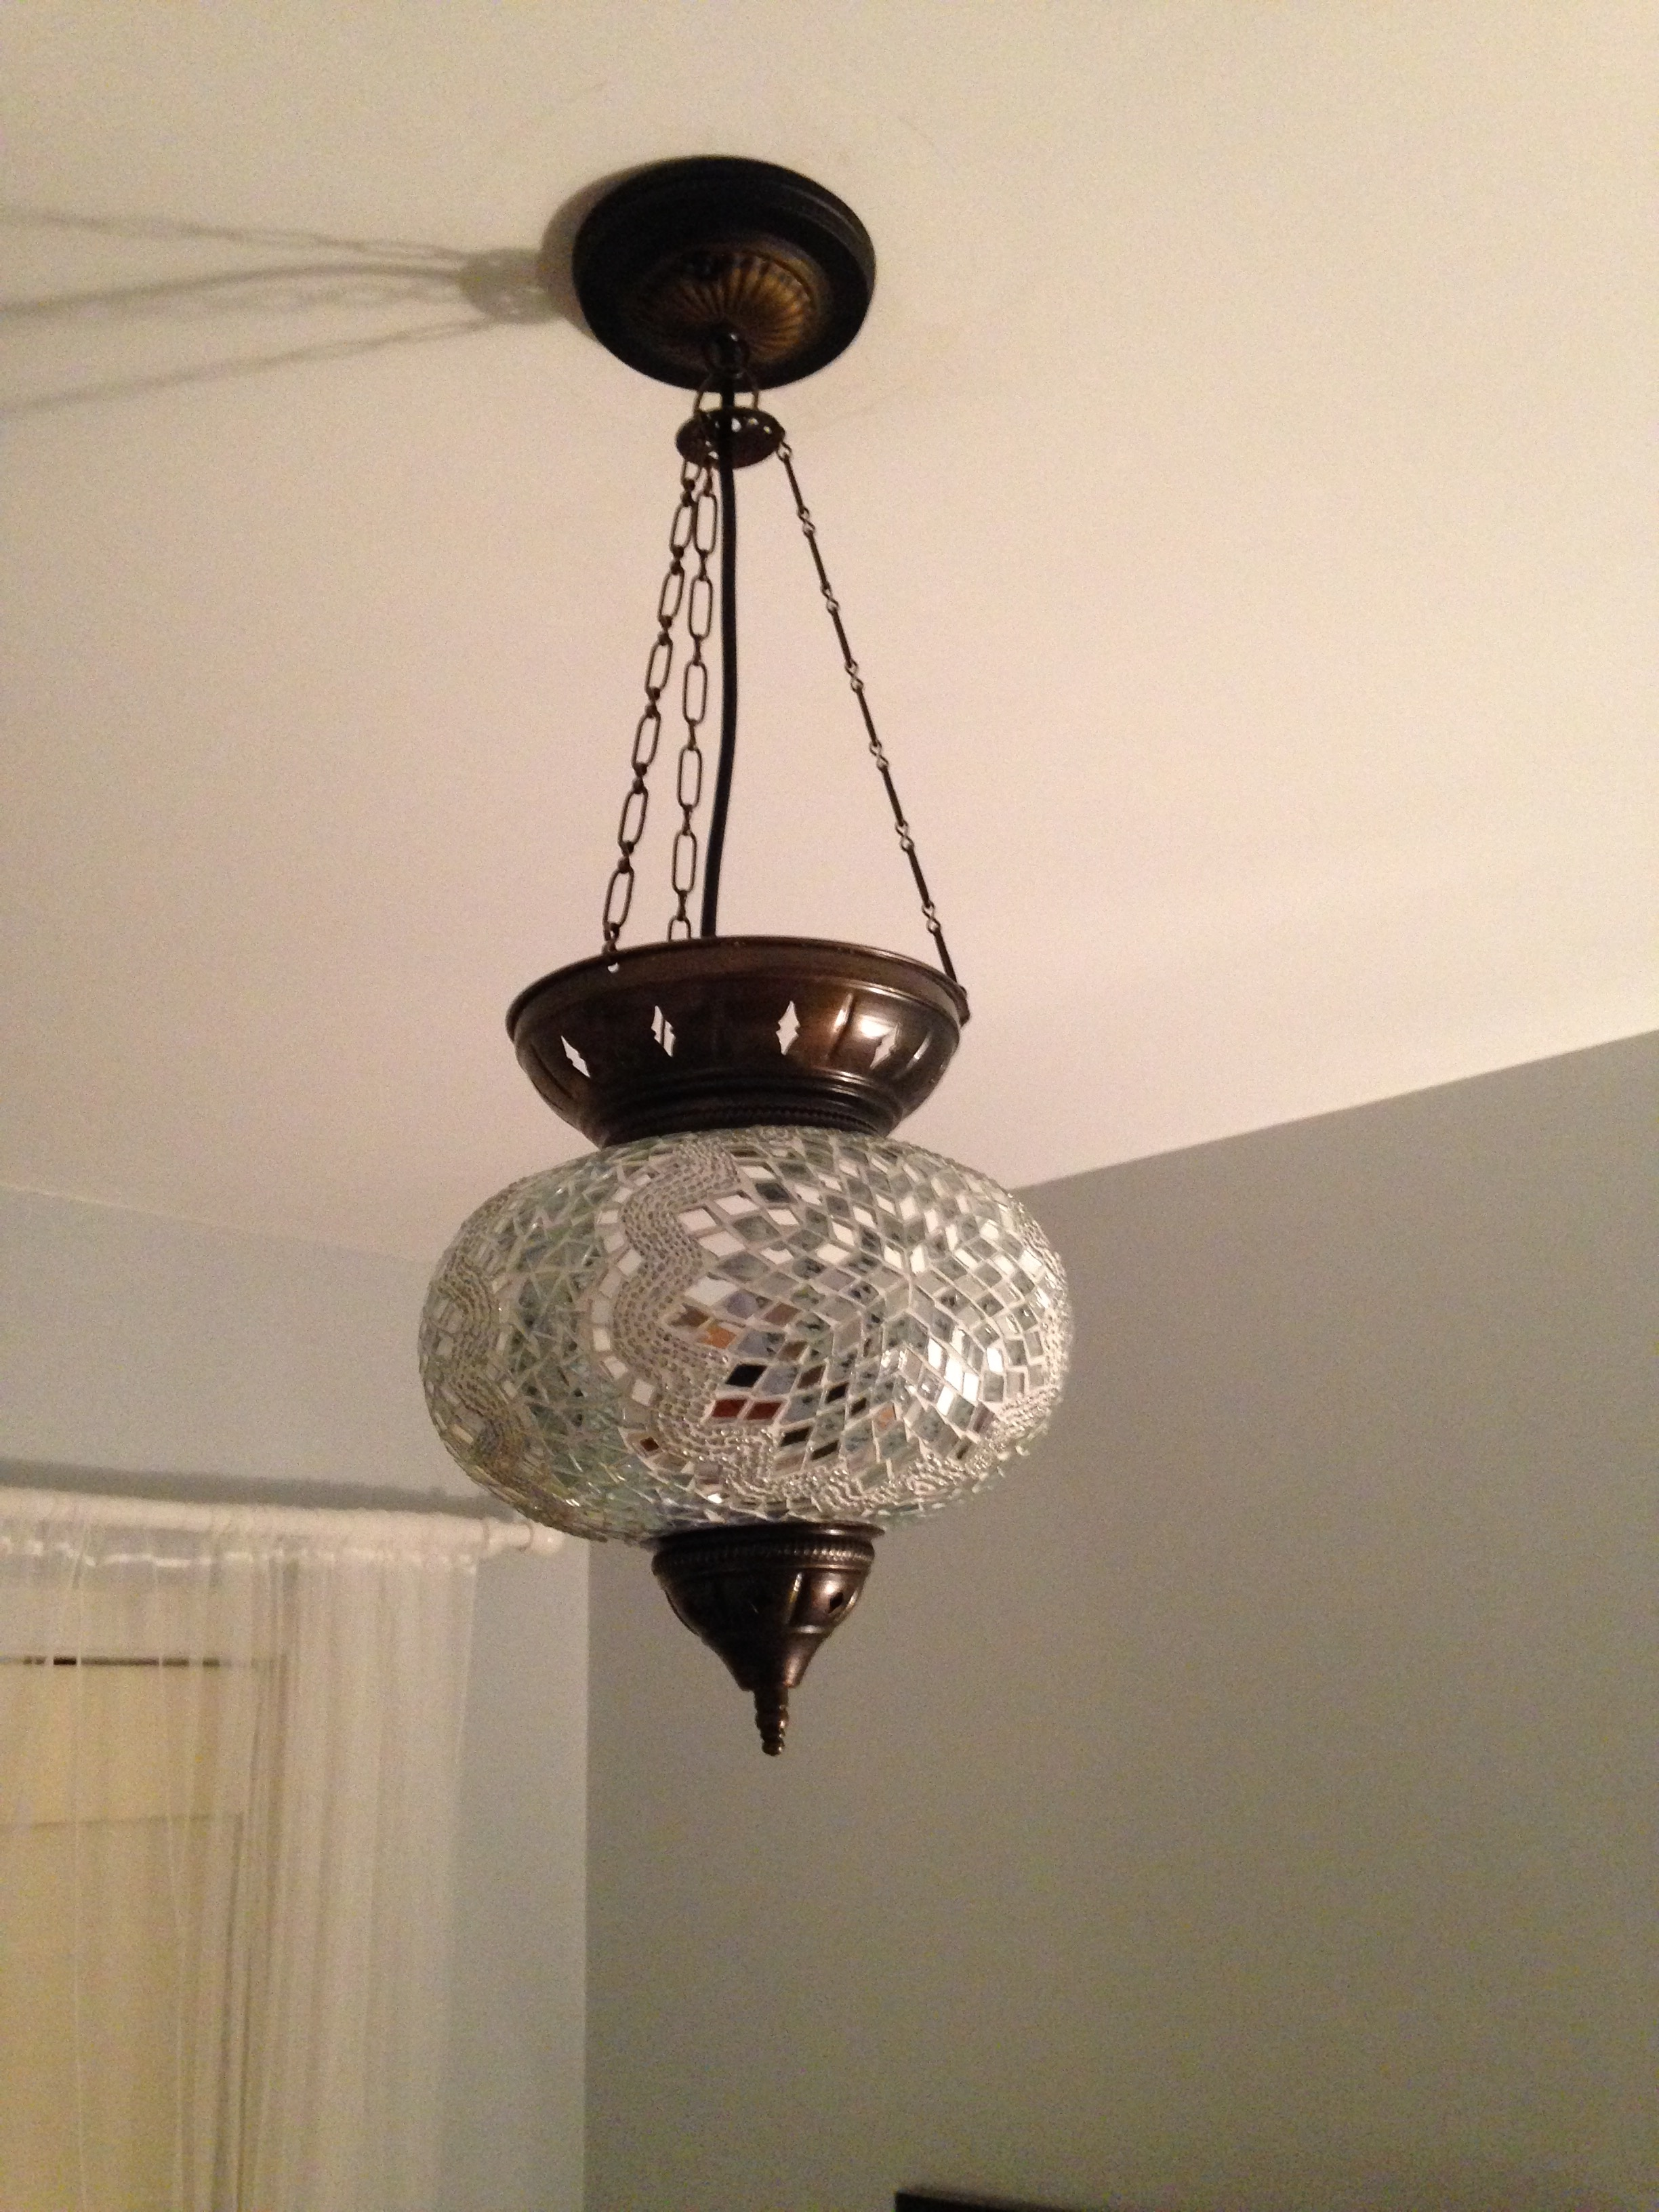 Turkish De Light So Pretty Is As Does Ceiling Canopy For Pendant Kits On Kit Wiring With